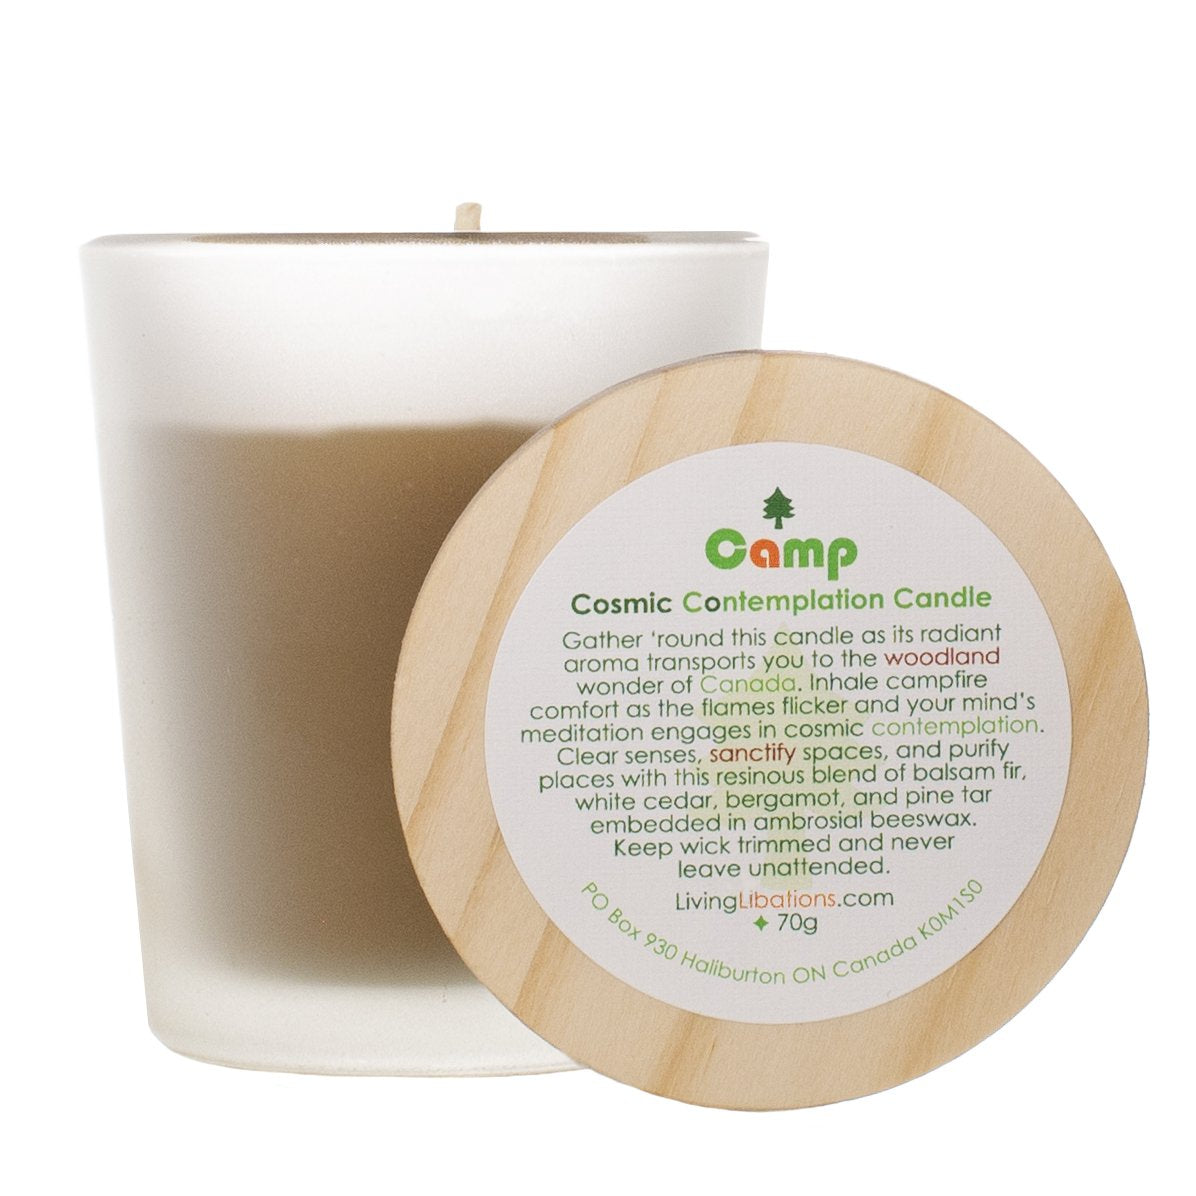 Camp Cosmic Contemplation Candle